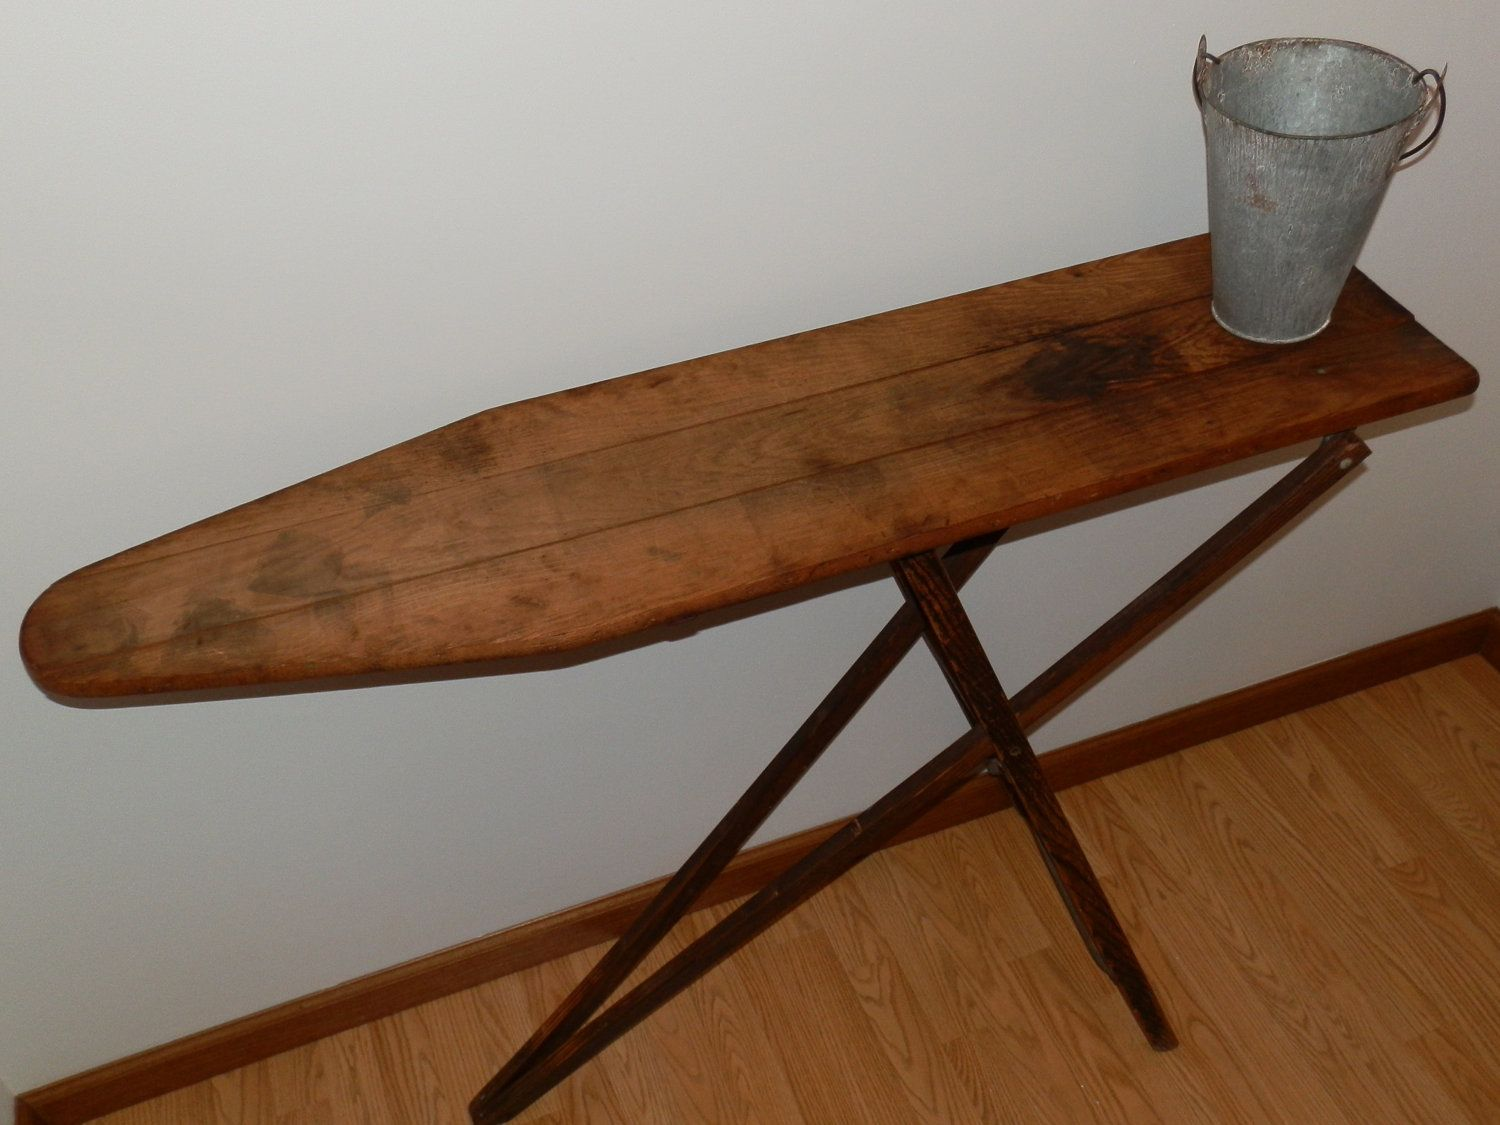 Pin By My Info On Iron Board Vintage Ironing Boards Antique